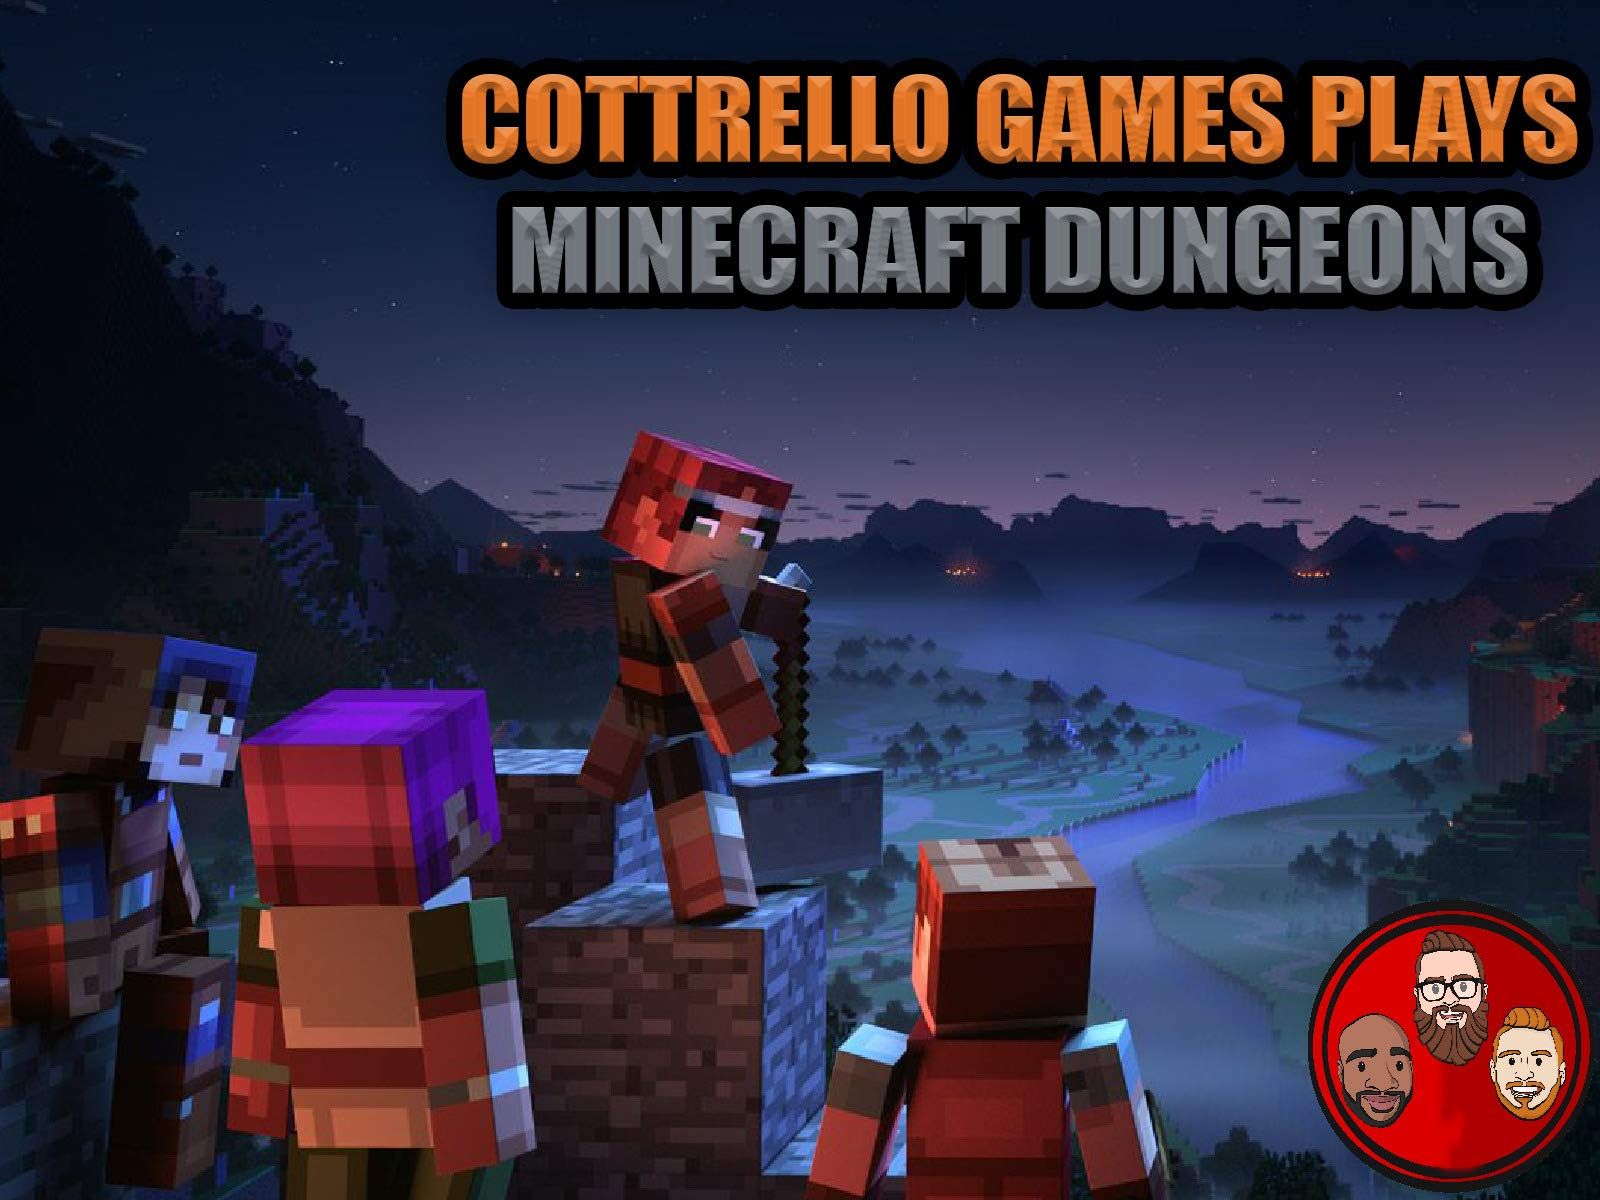 Minecraft Dungeons Playthrough with Cottrello Games